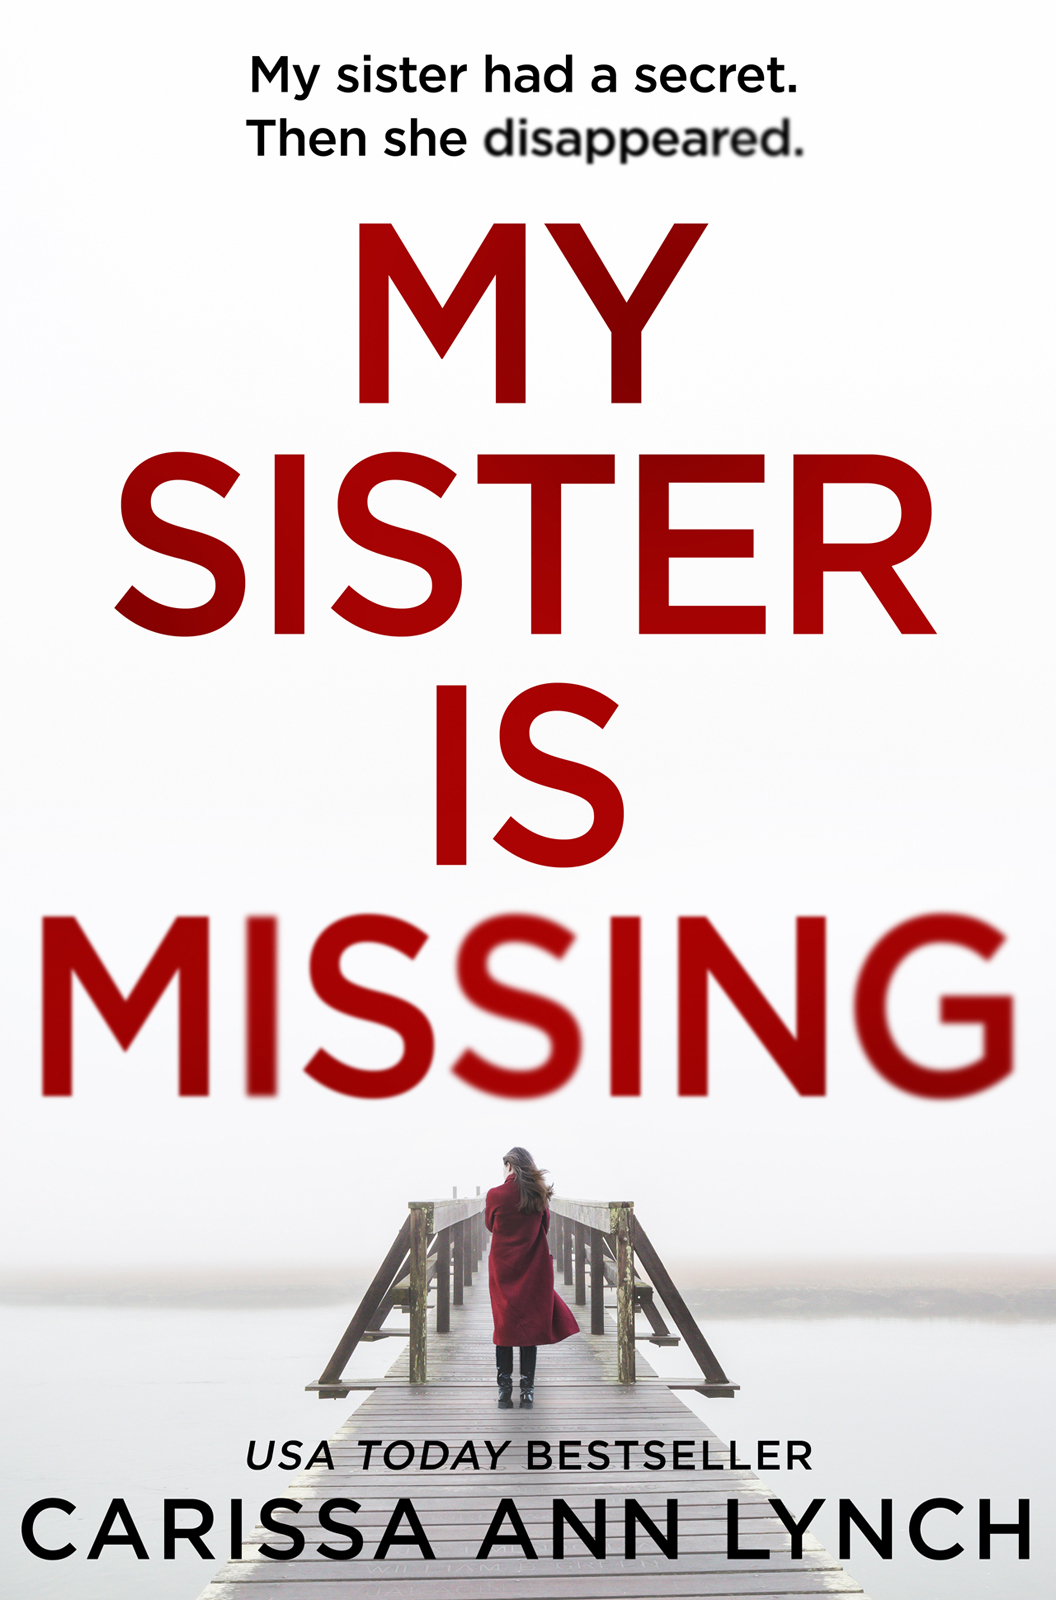 Carissa Lynch Ann My Sister is Missing: The most creepy and gripping thriller of 2019